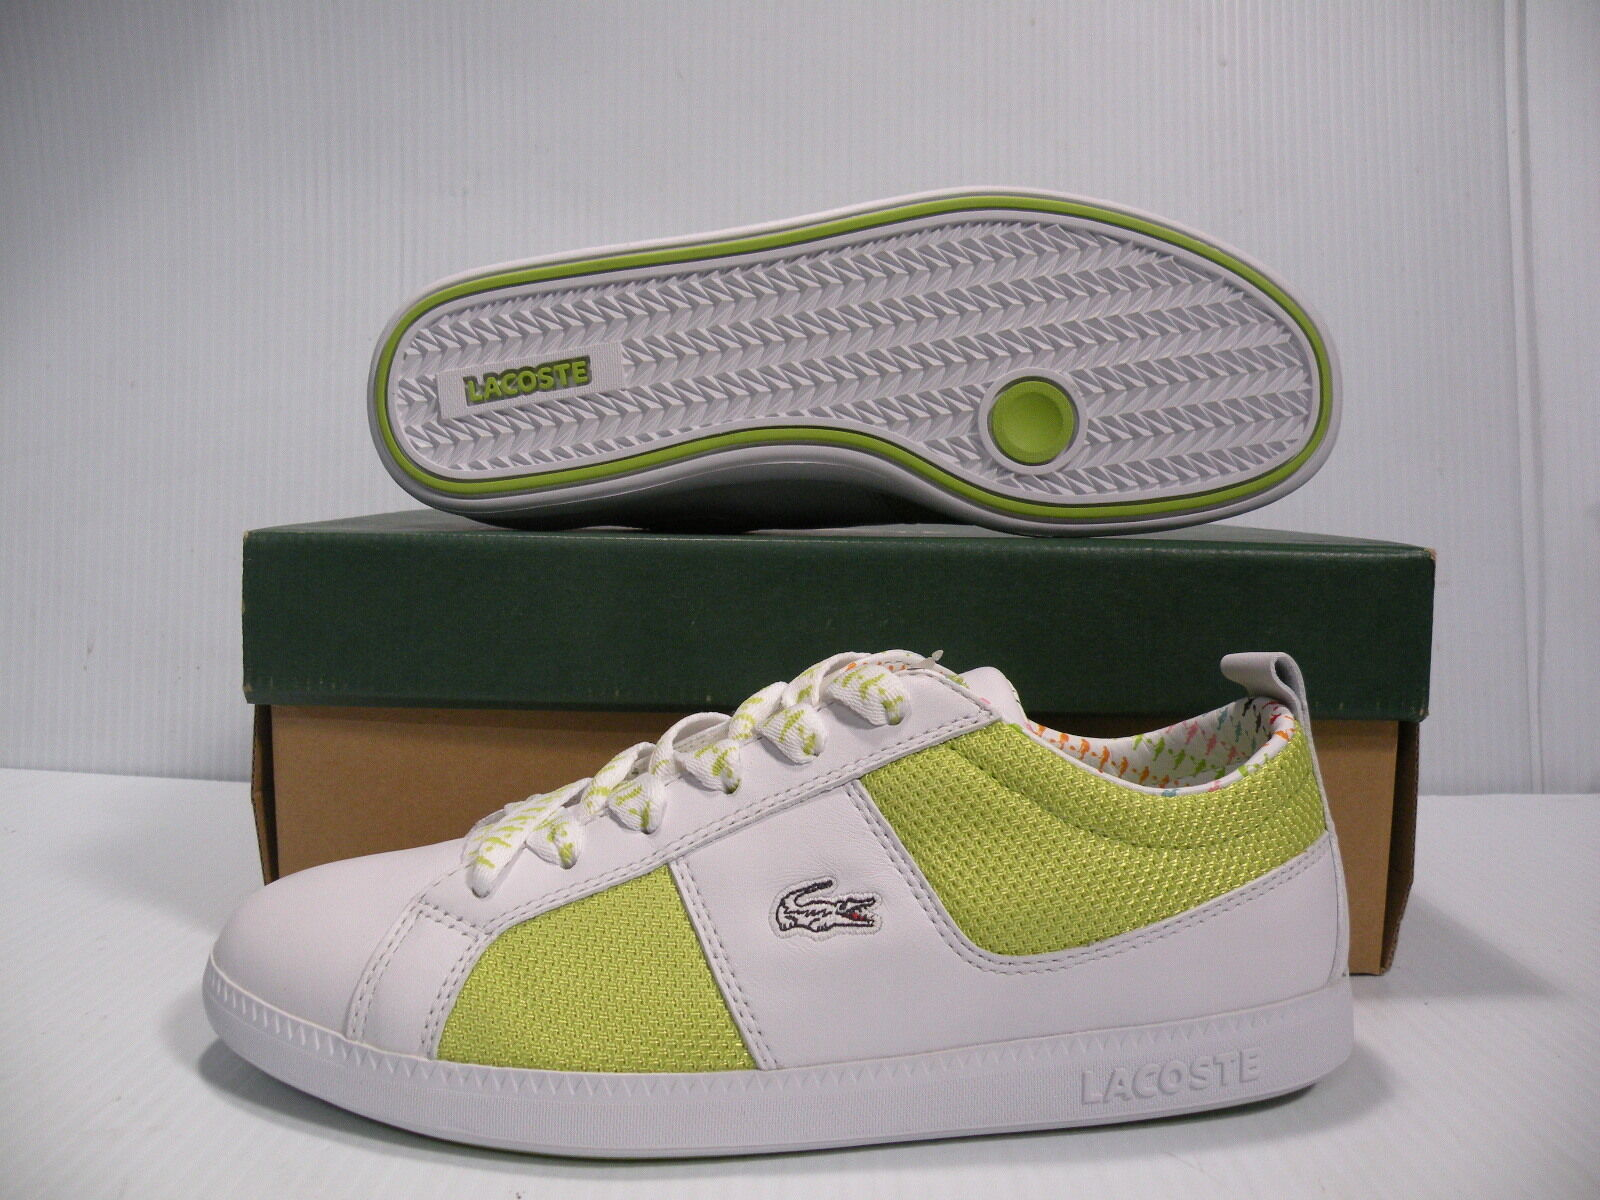 LACOSTE OBSERVE TNS SPORT LOW WOMEN SHOES WHITE GREEN 3SPW1961-F01 SIZE 10 NEW